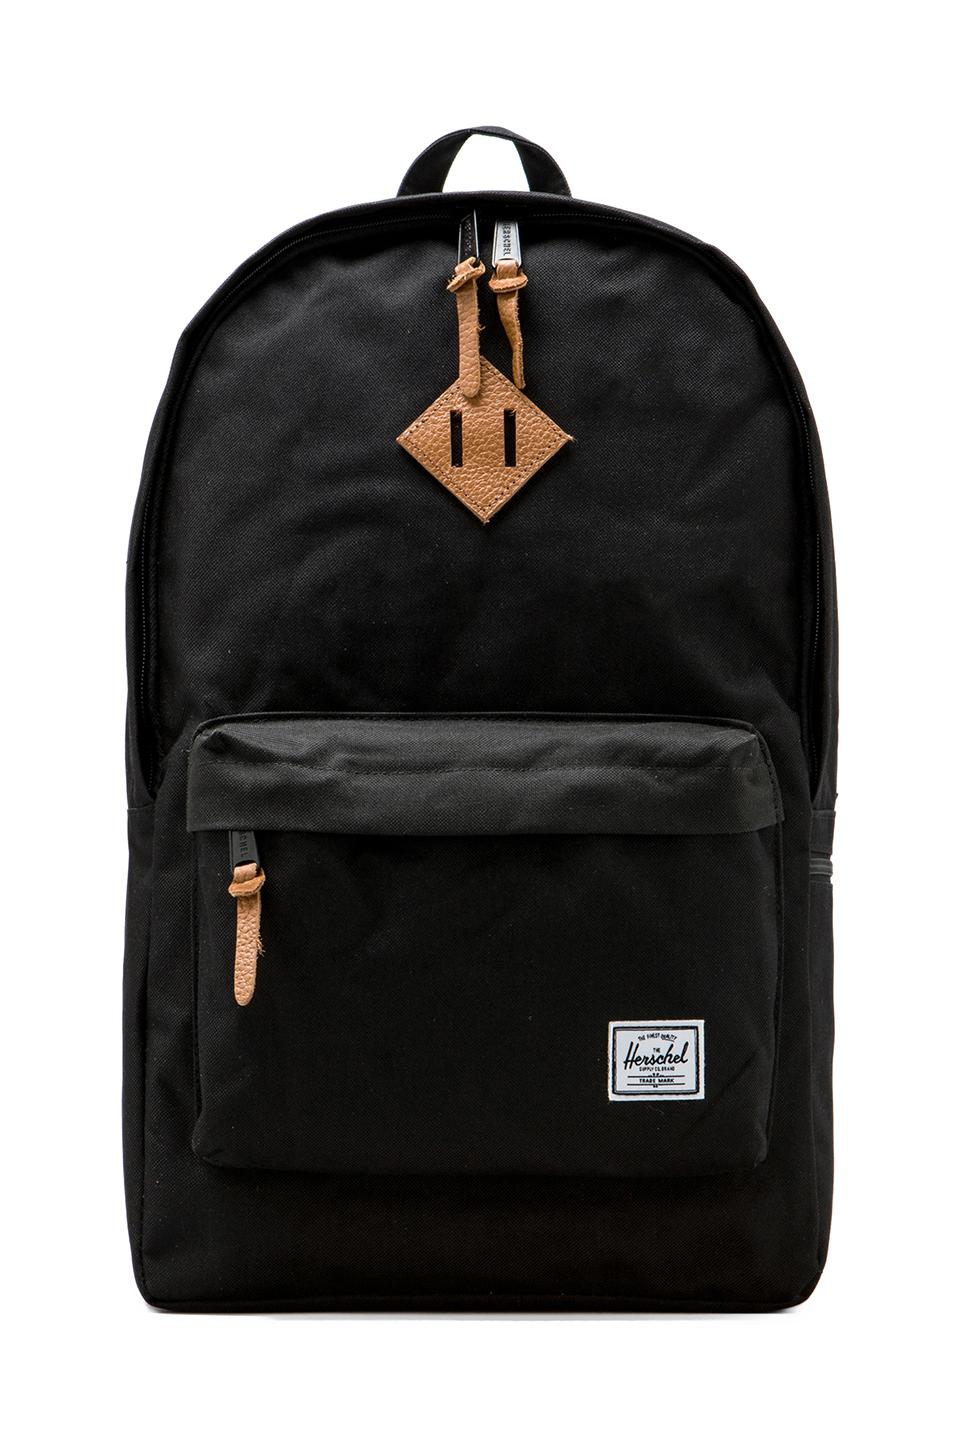 Herschel Supply Co. Heritage Plus Backpack in Black